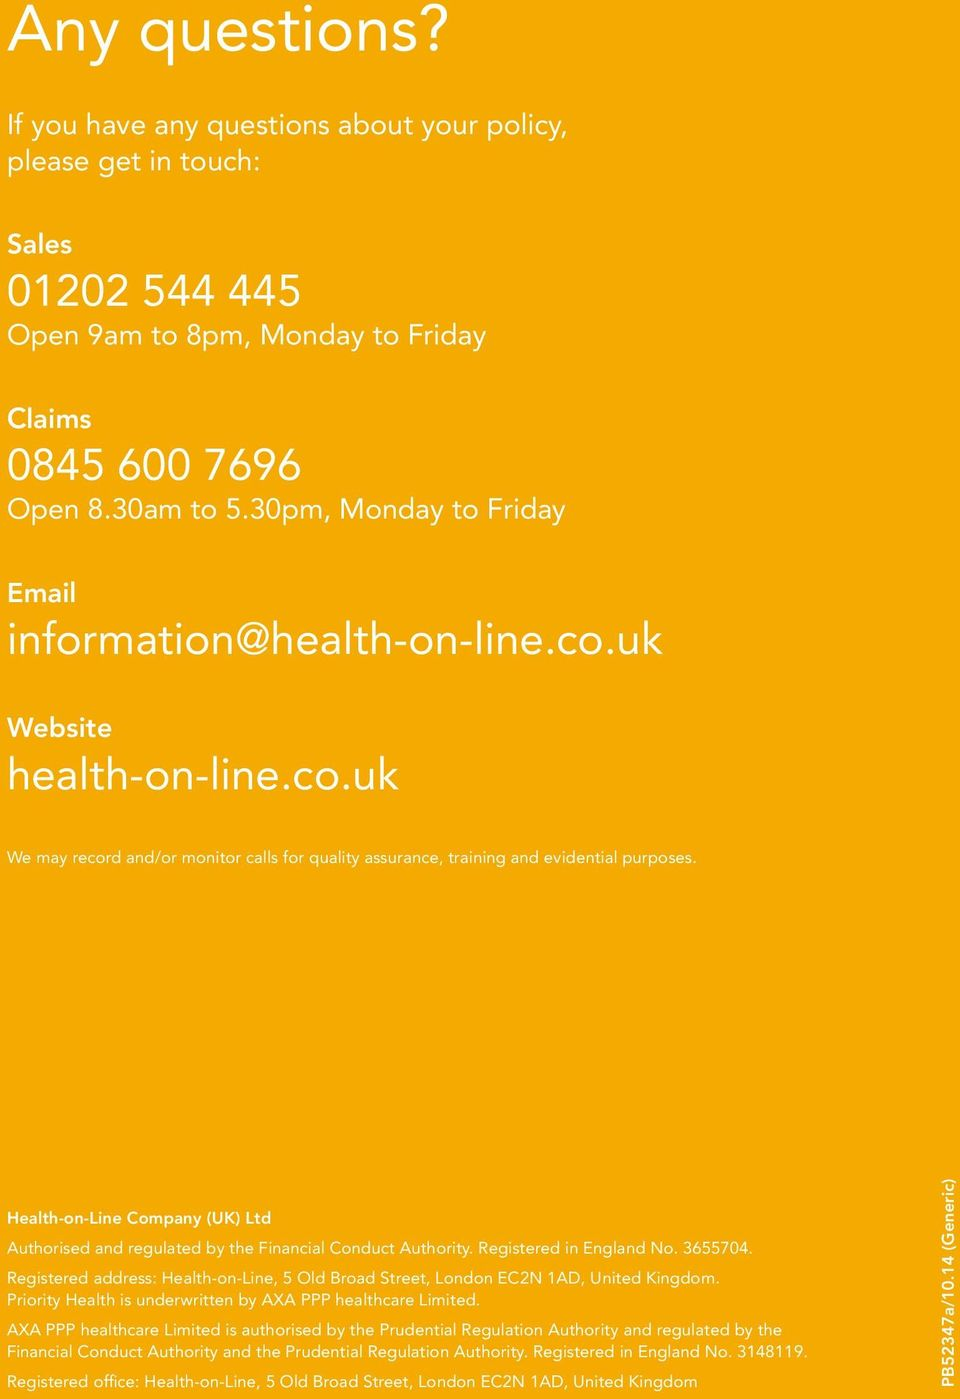 Health-on-Line Company (UK) Ltd Authorised and regulated by the Financial Conduct Authority. Registered in England No. 3655704.